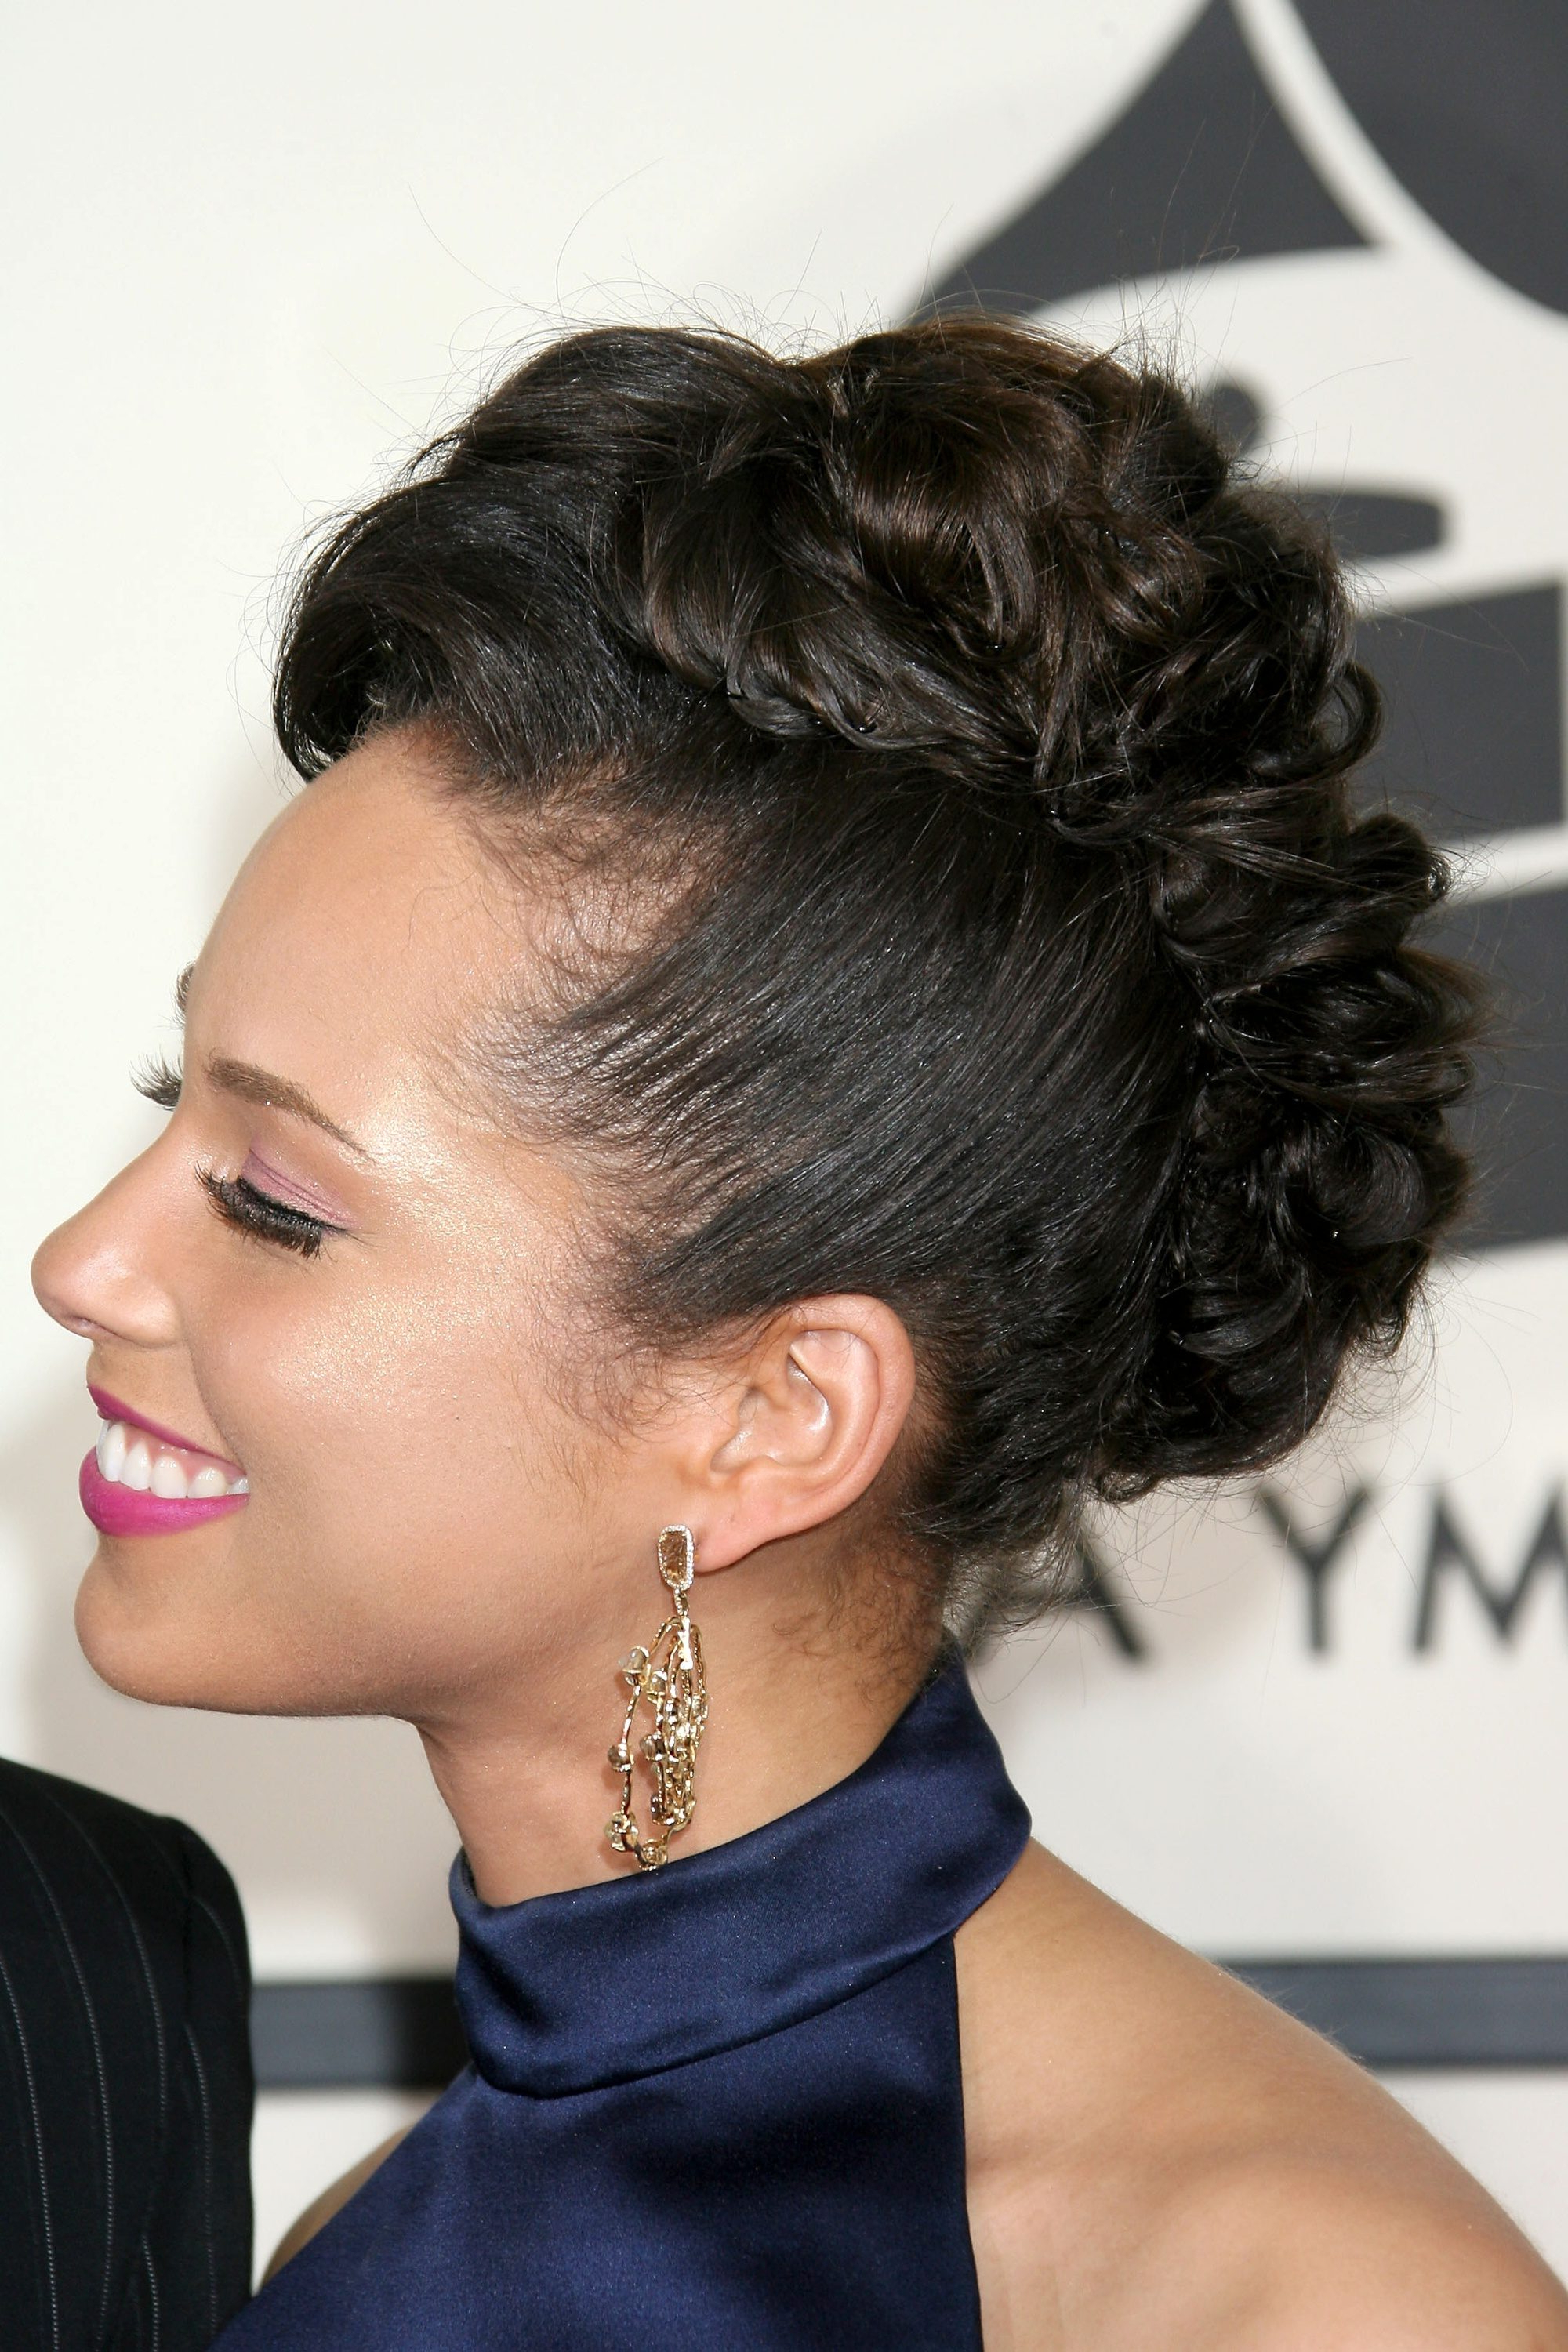 10 Mohawk Hairstyles For Black Women You Seriously Need To Within Preferred Alicia Keys Glamorous Mohawk Hairstyles (View 6 of 20)